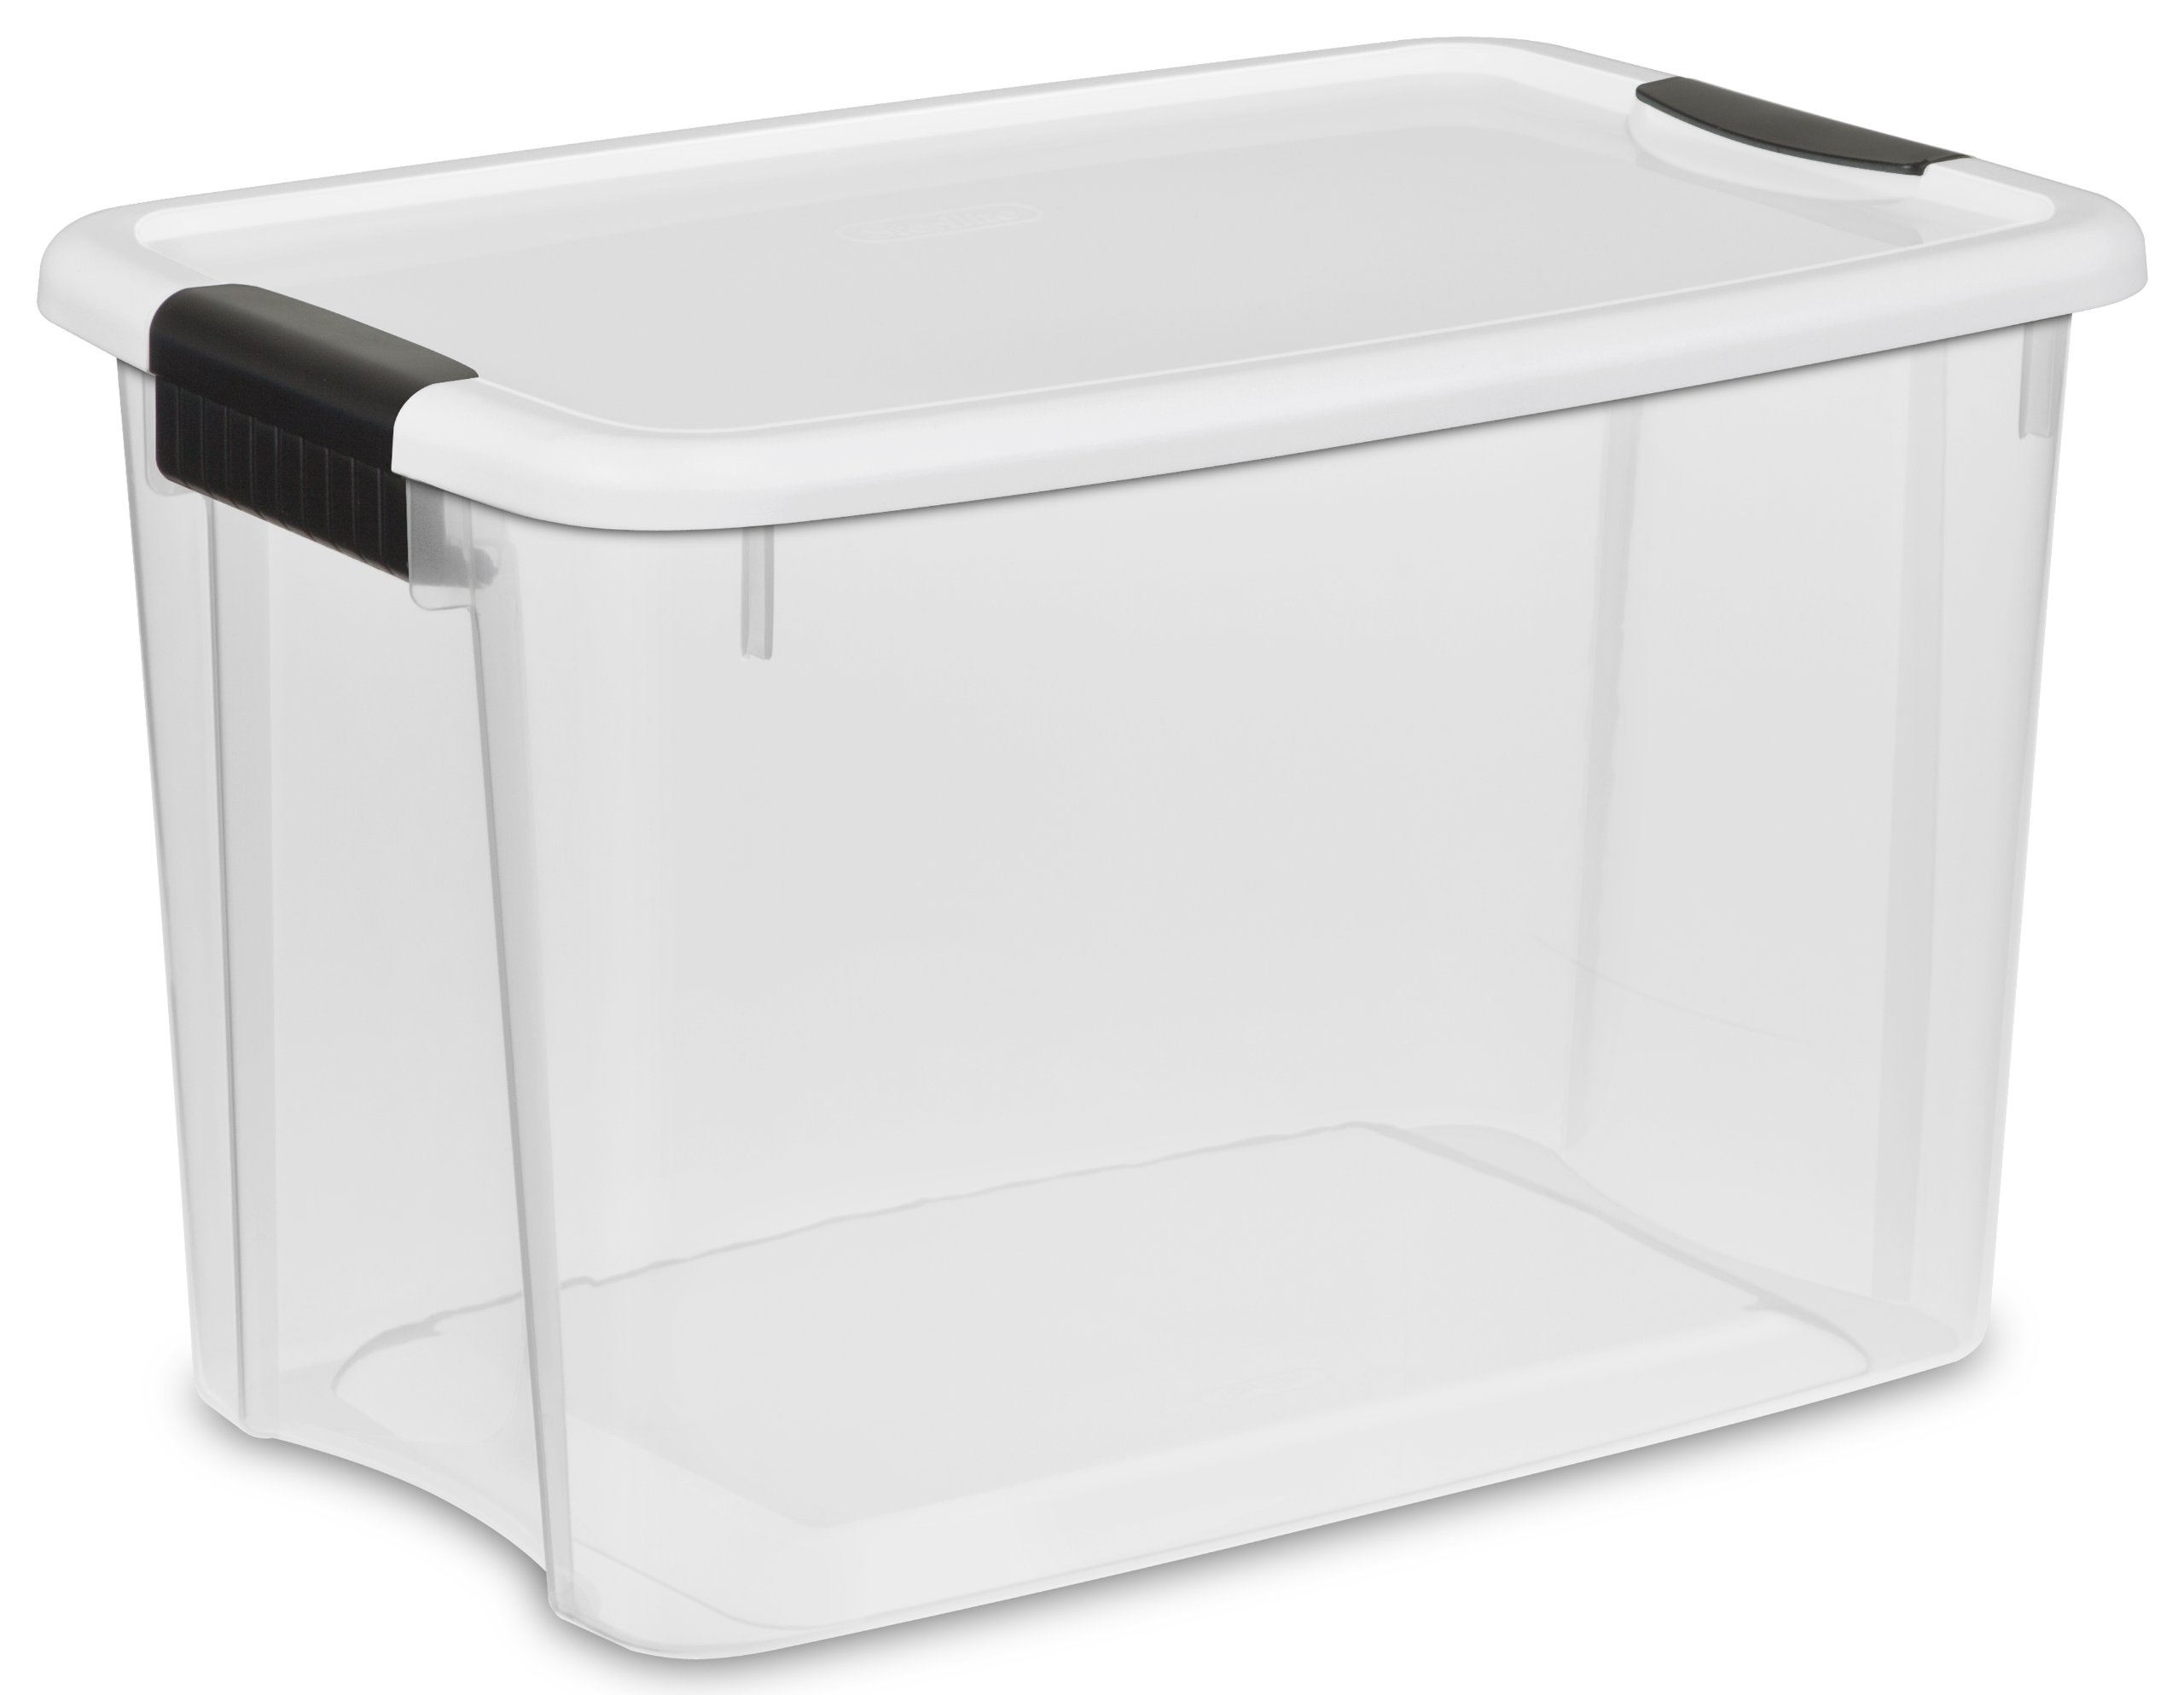 6 PACK Storage Latch Box Plastic Container Bin Organizer With Lids